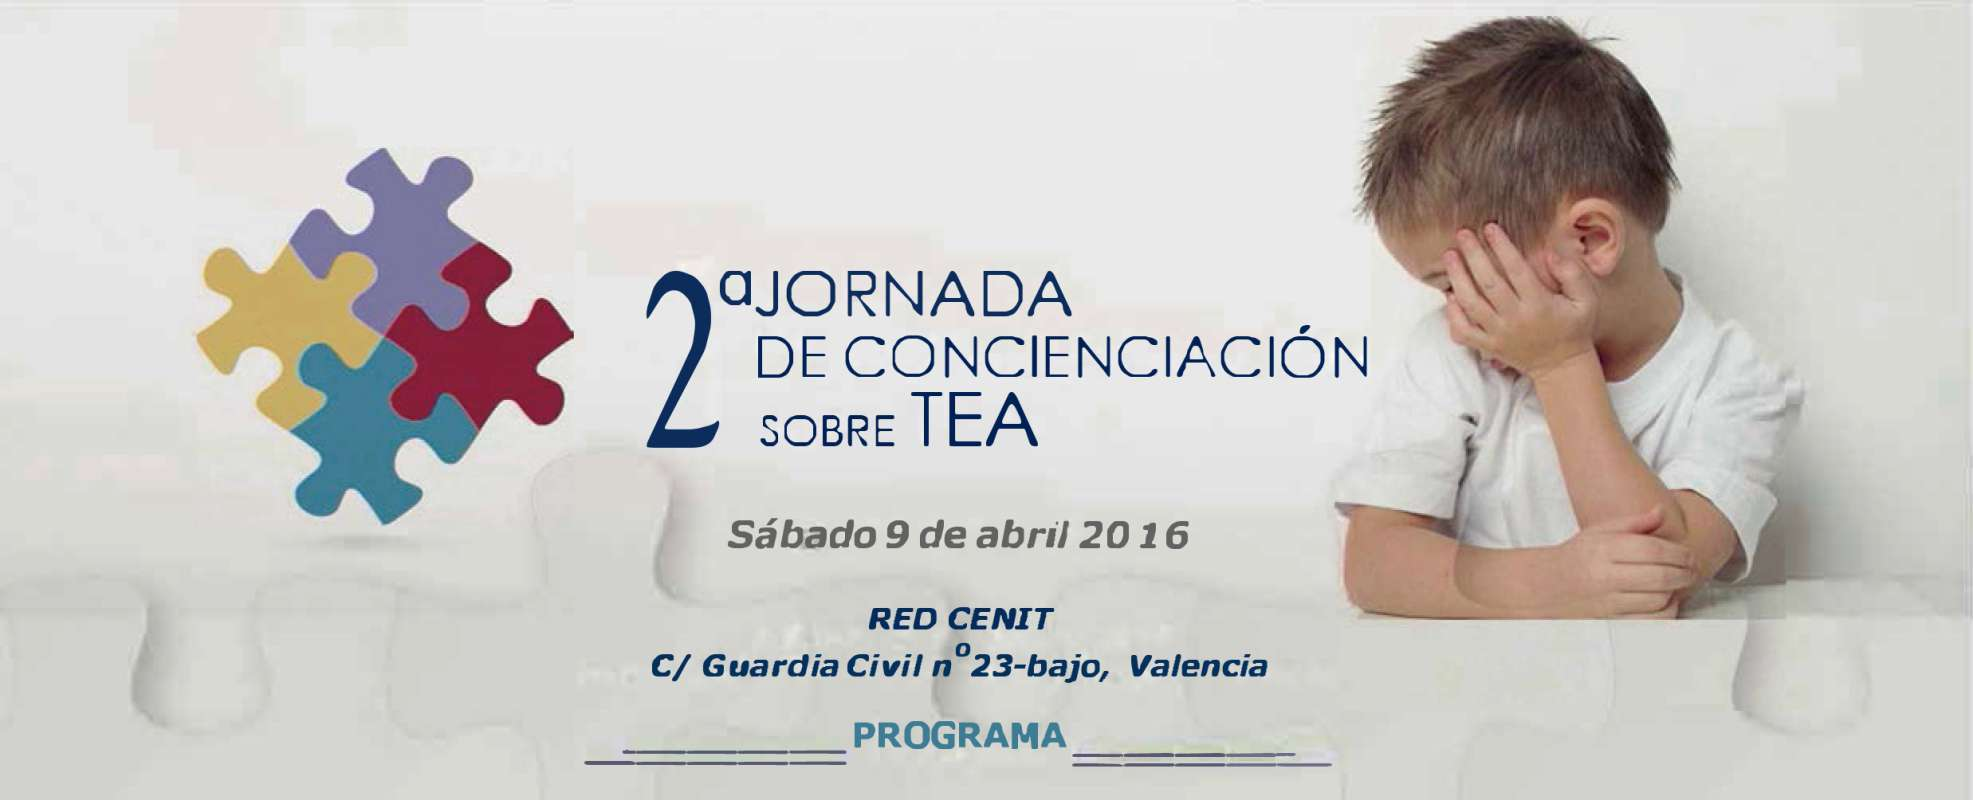 Cartel sobre jornada TEA